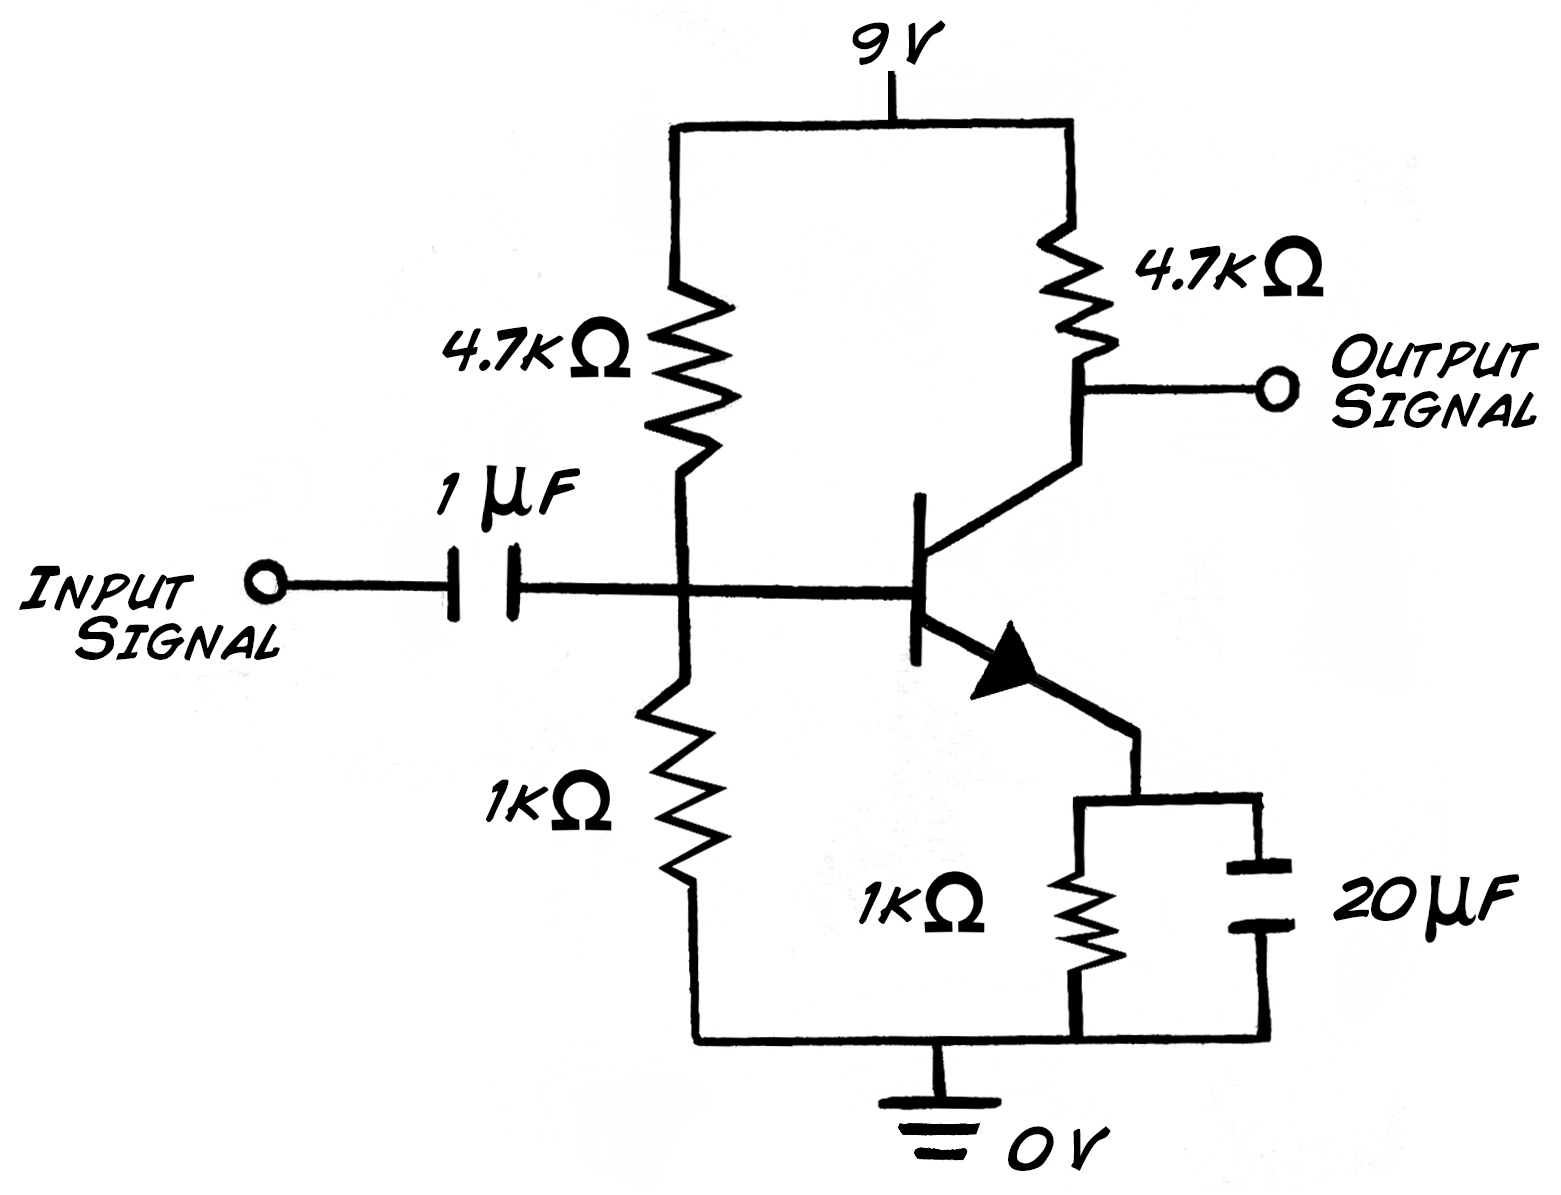 how to make amplifier circuit at home